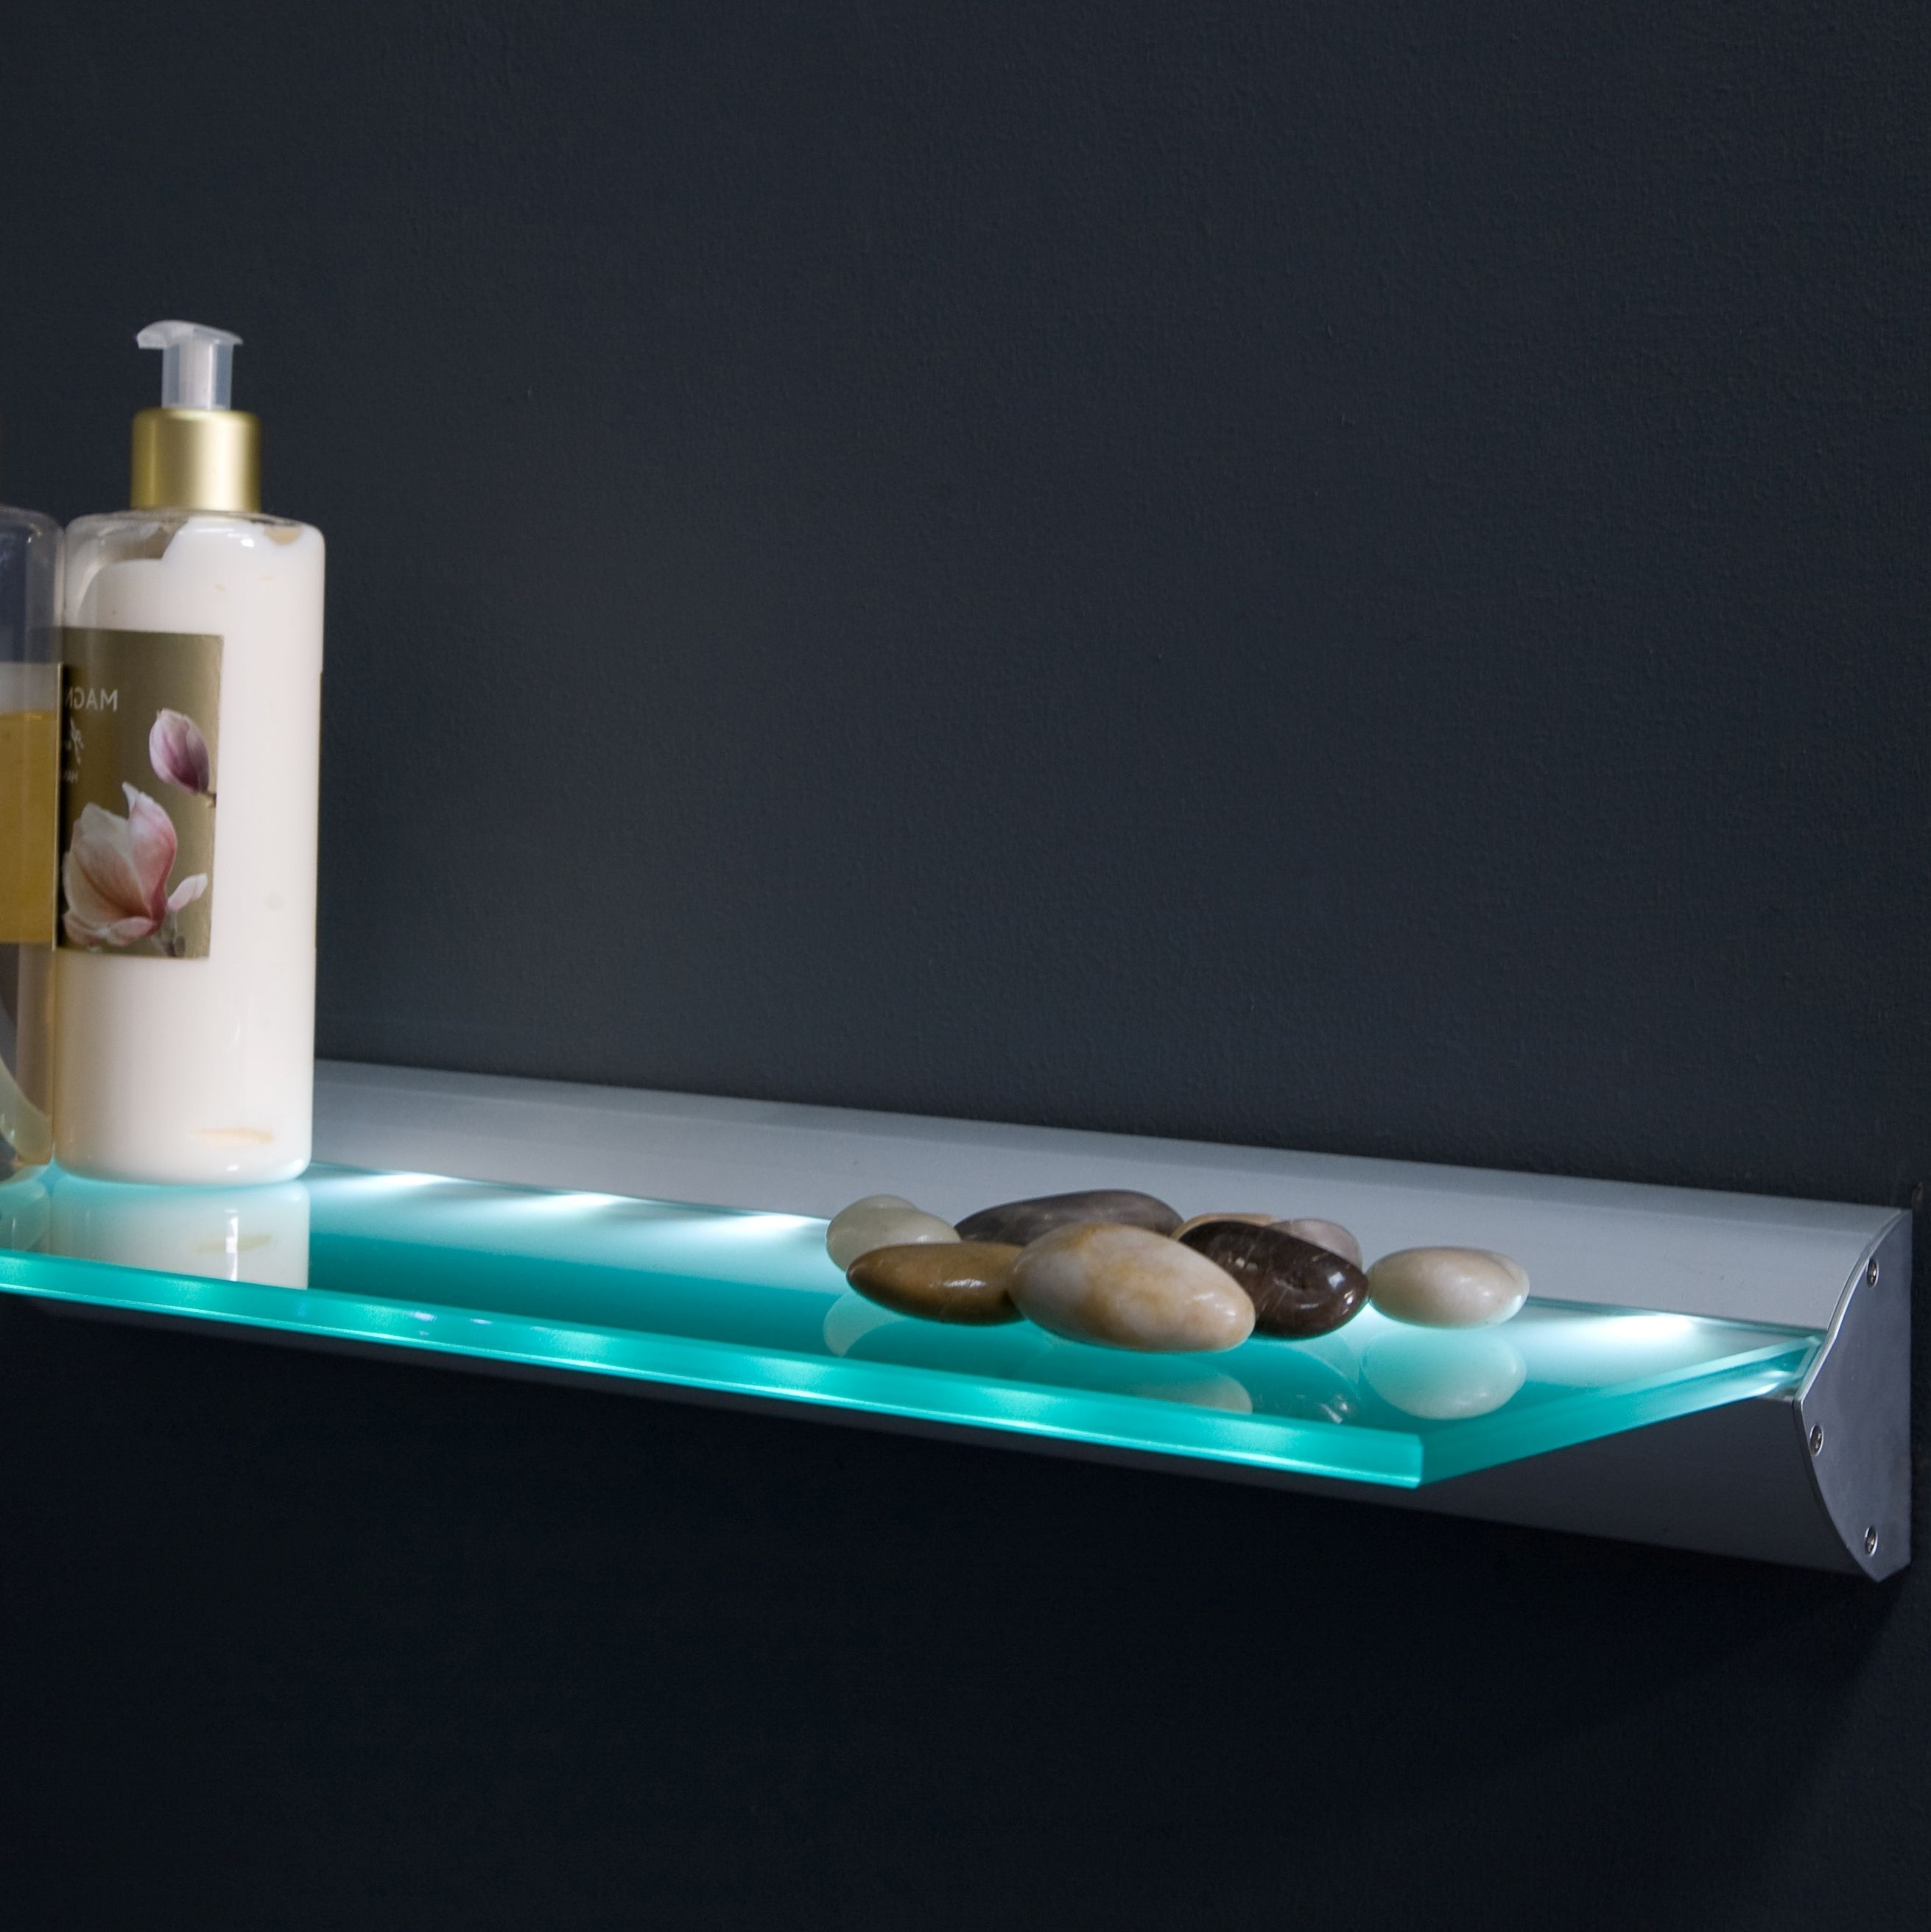 Led Shelf Lighting Throughout Illuminated Glass Shelf (View 15 of 15)